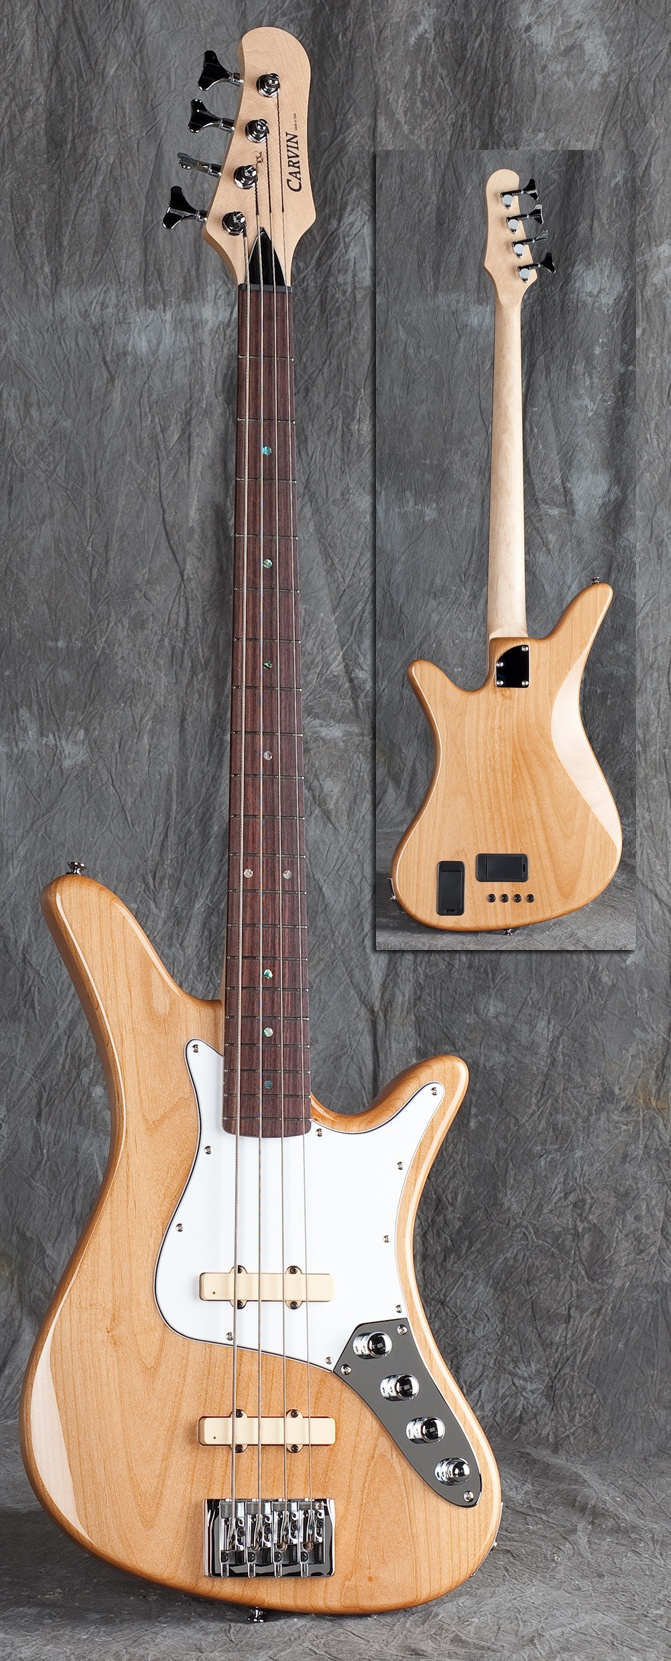 Another girl another planet Bass Tab - Blink 182